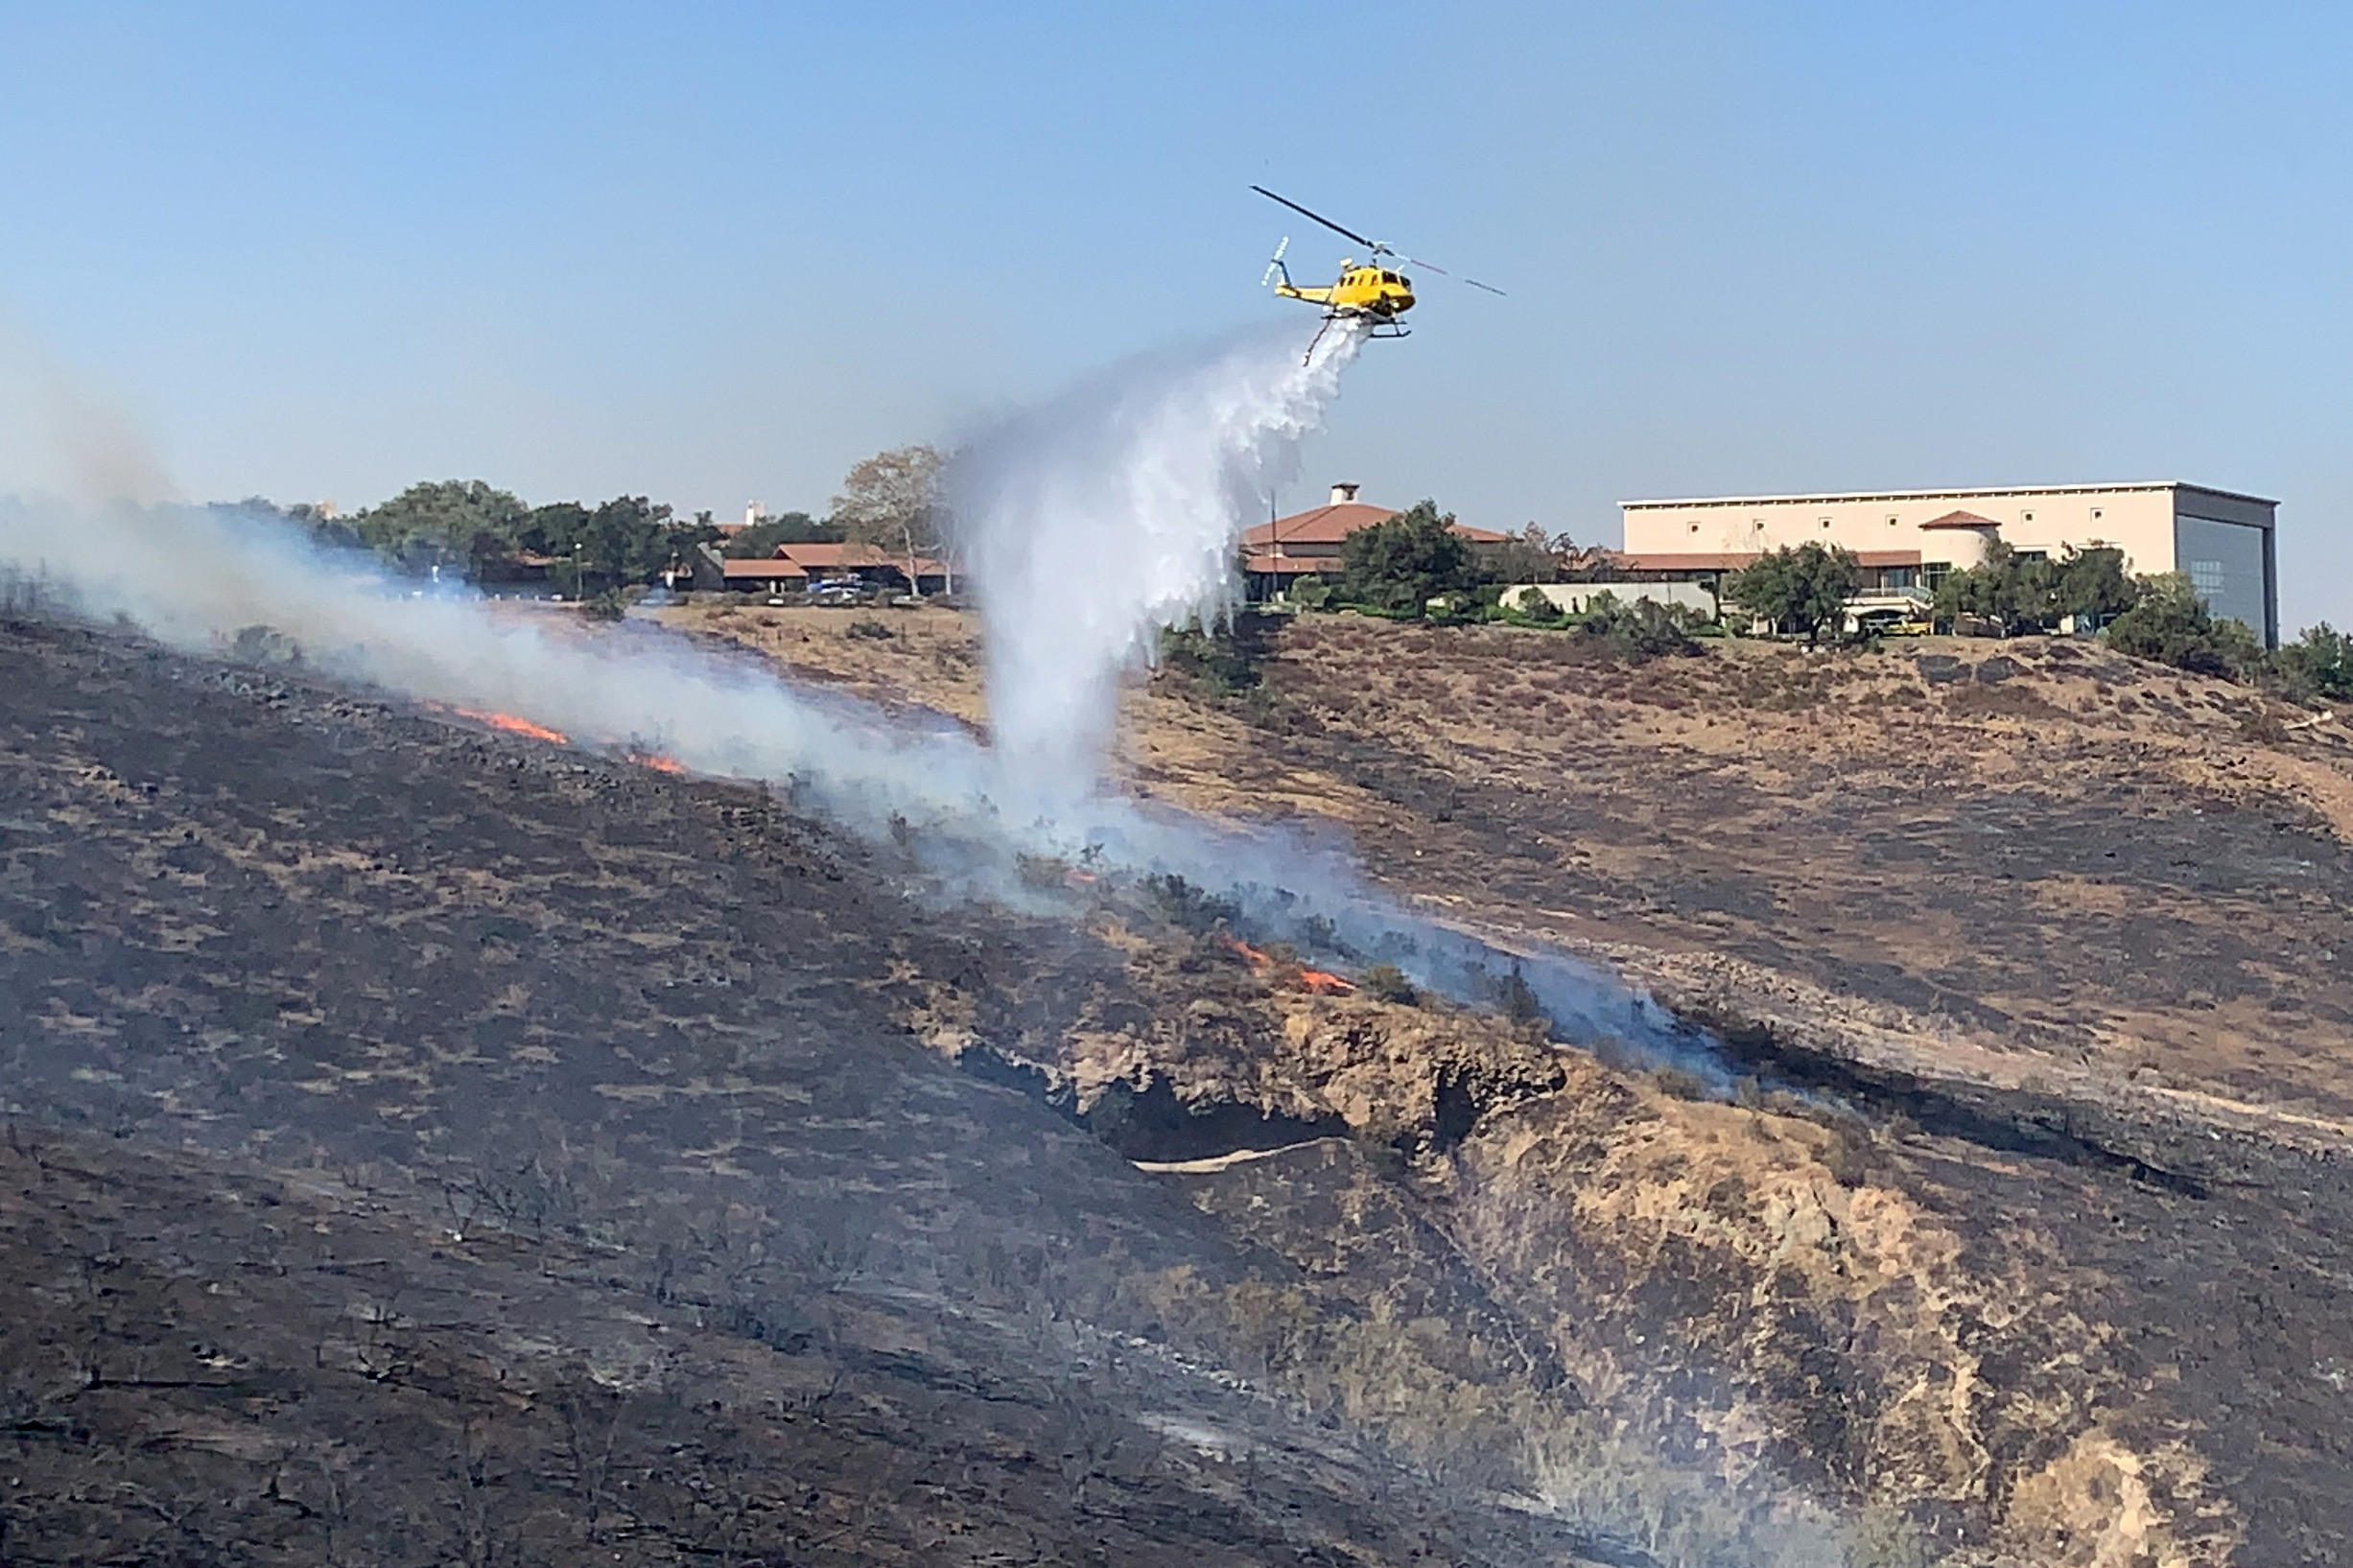 A helicopter drops water on a fire burning on a hillside near the Reagan Presidential library.